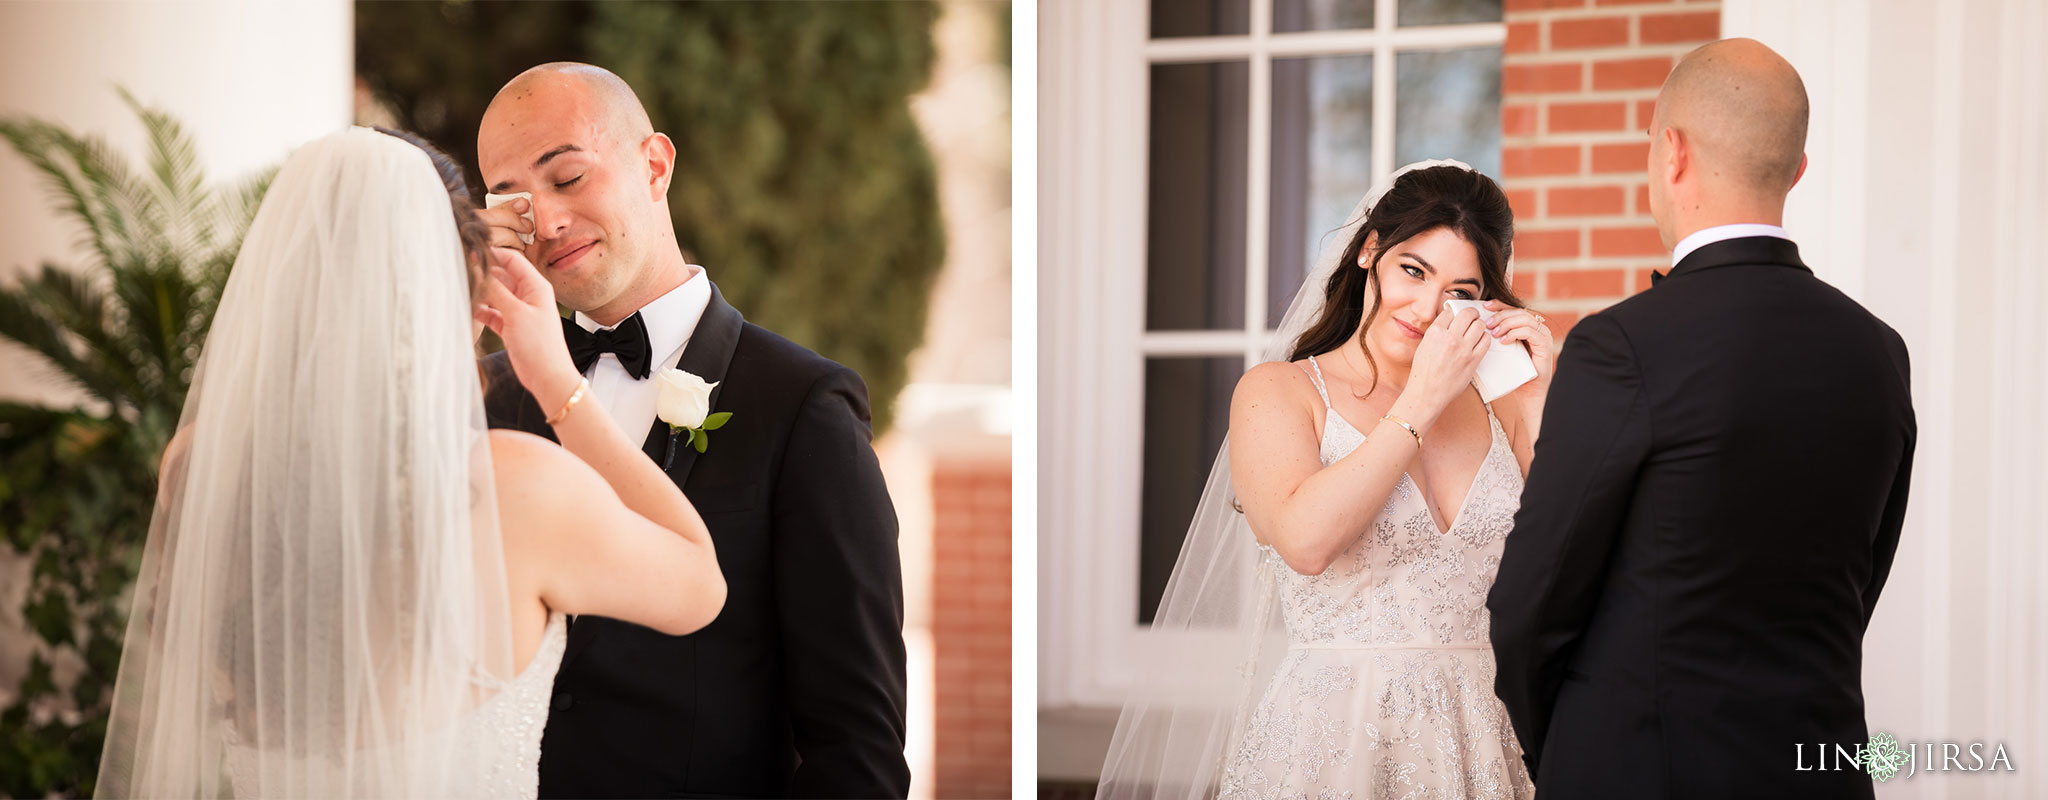 14 sherwood country club ventura county first look wedding photography